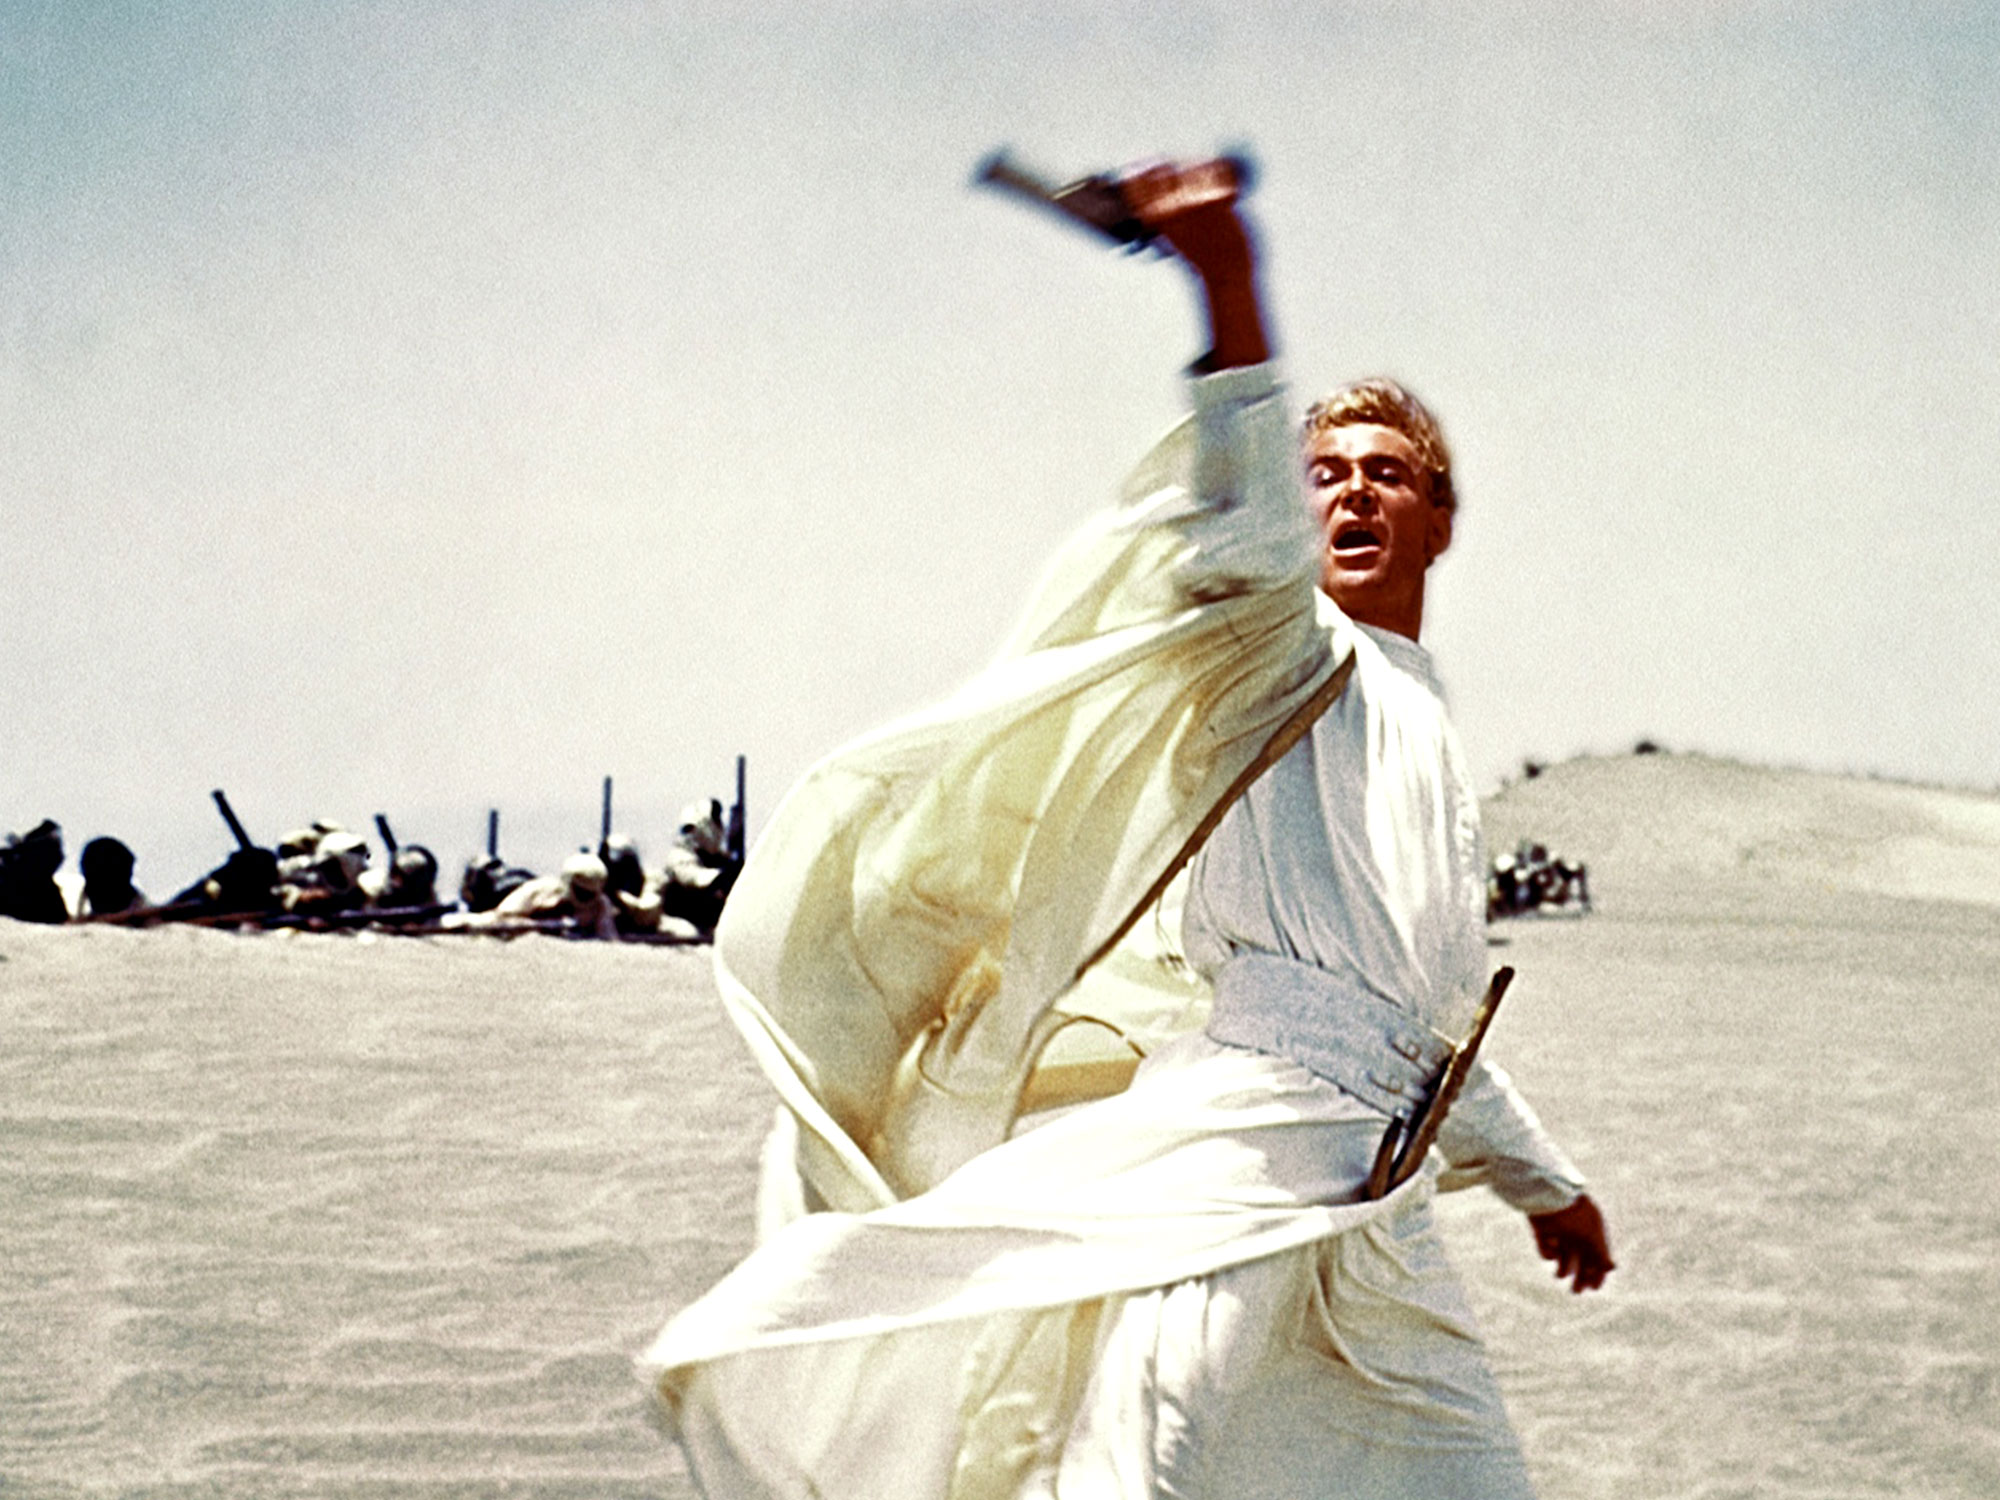 lawrence of arabia 4k restoration Films 'Based On A True Story' That Completely Lied To Us